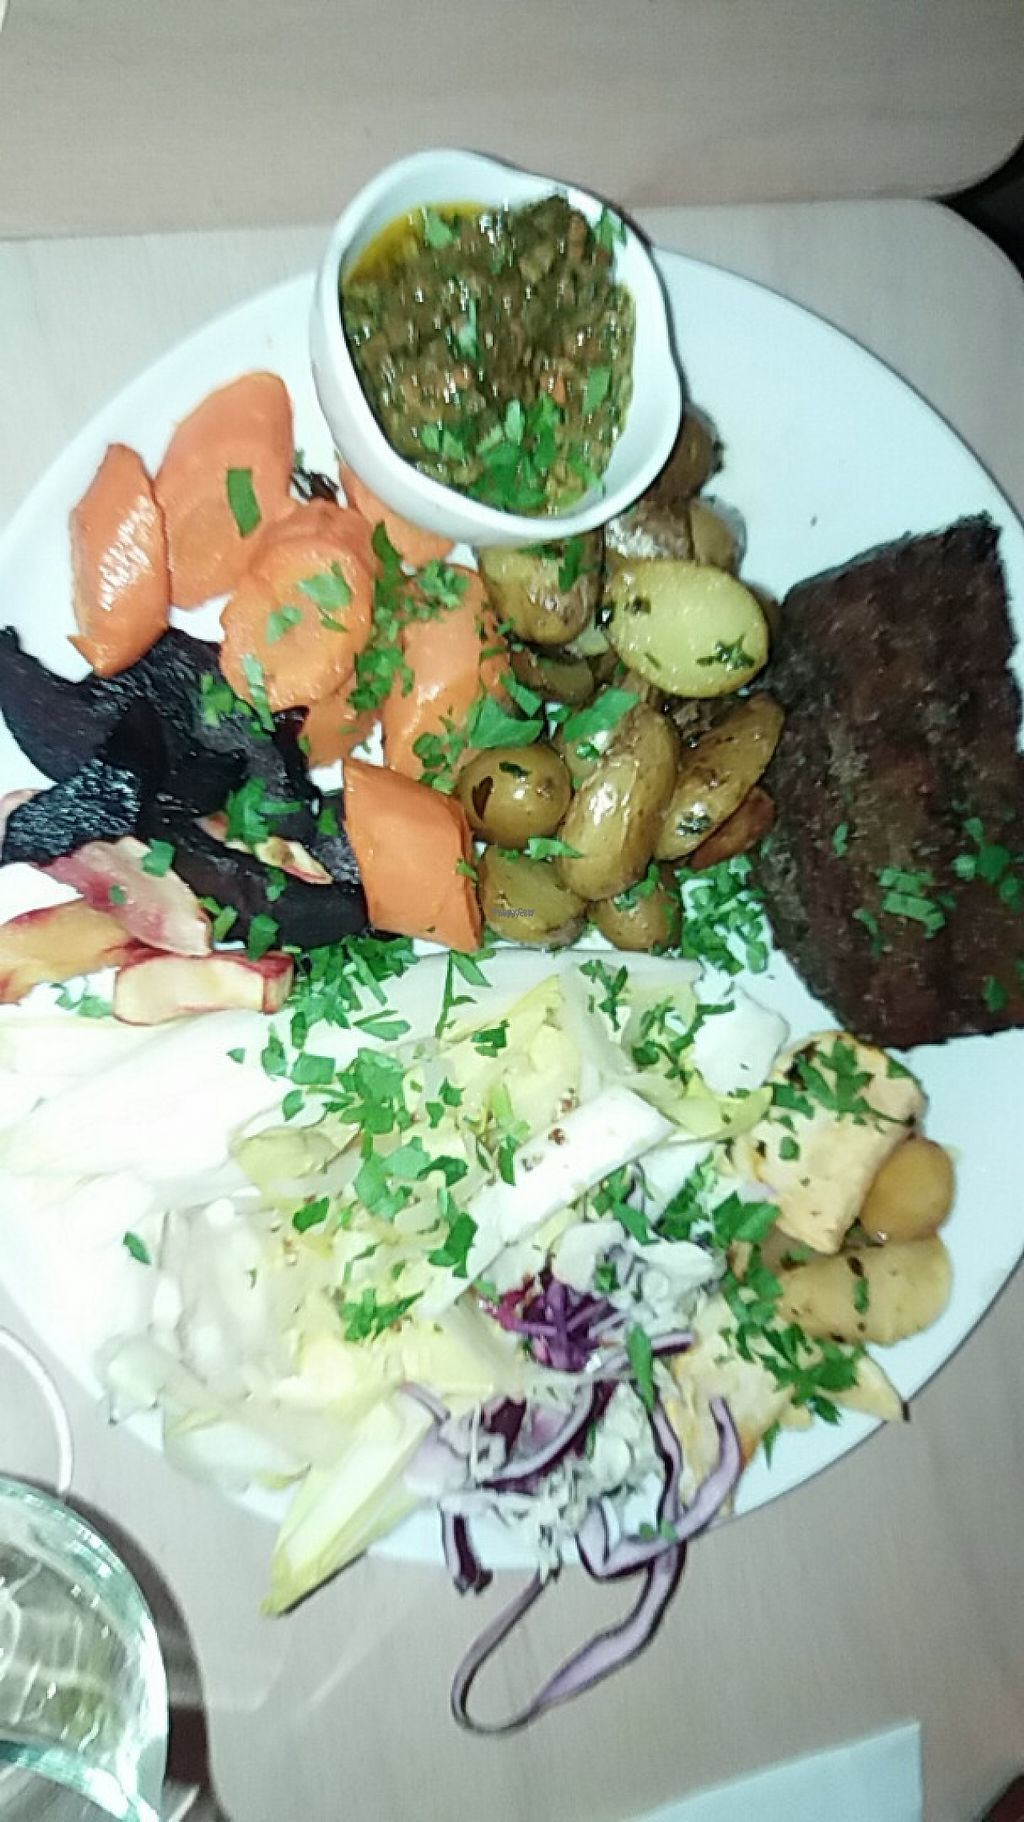 """Photo of Le Faitout Vegan  by <a href=""""/members/profile/thenaturalfusions"""">thenaturalfusions</a> <br/>steak frites vegan 15 euros <br/> March 25, 2017  - <a href='/contact/abuse/image/83489/240729'>Report</a>"""